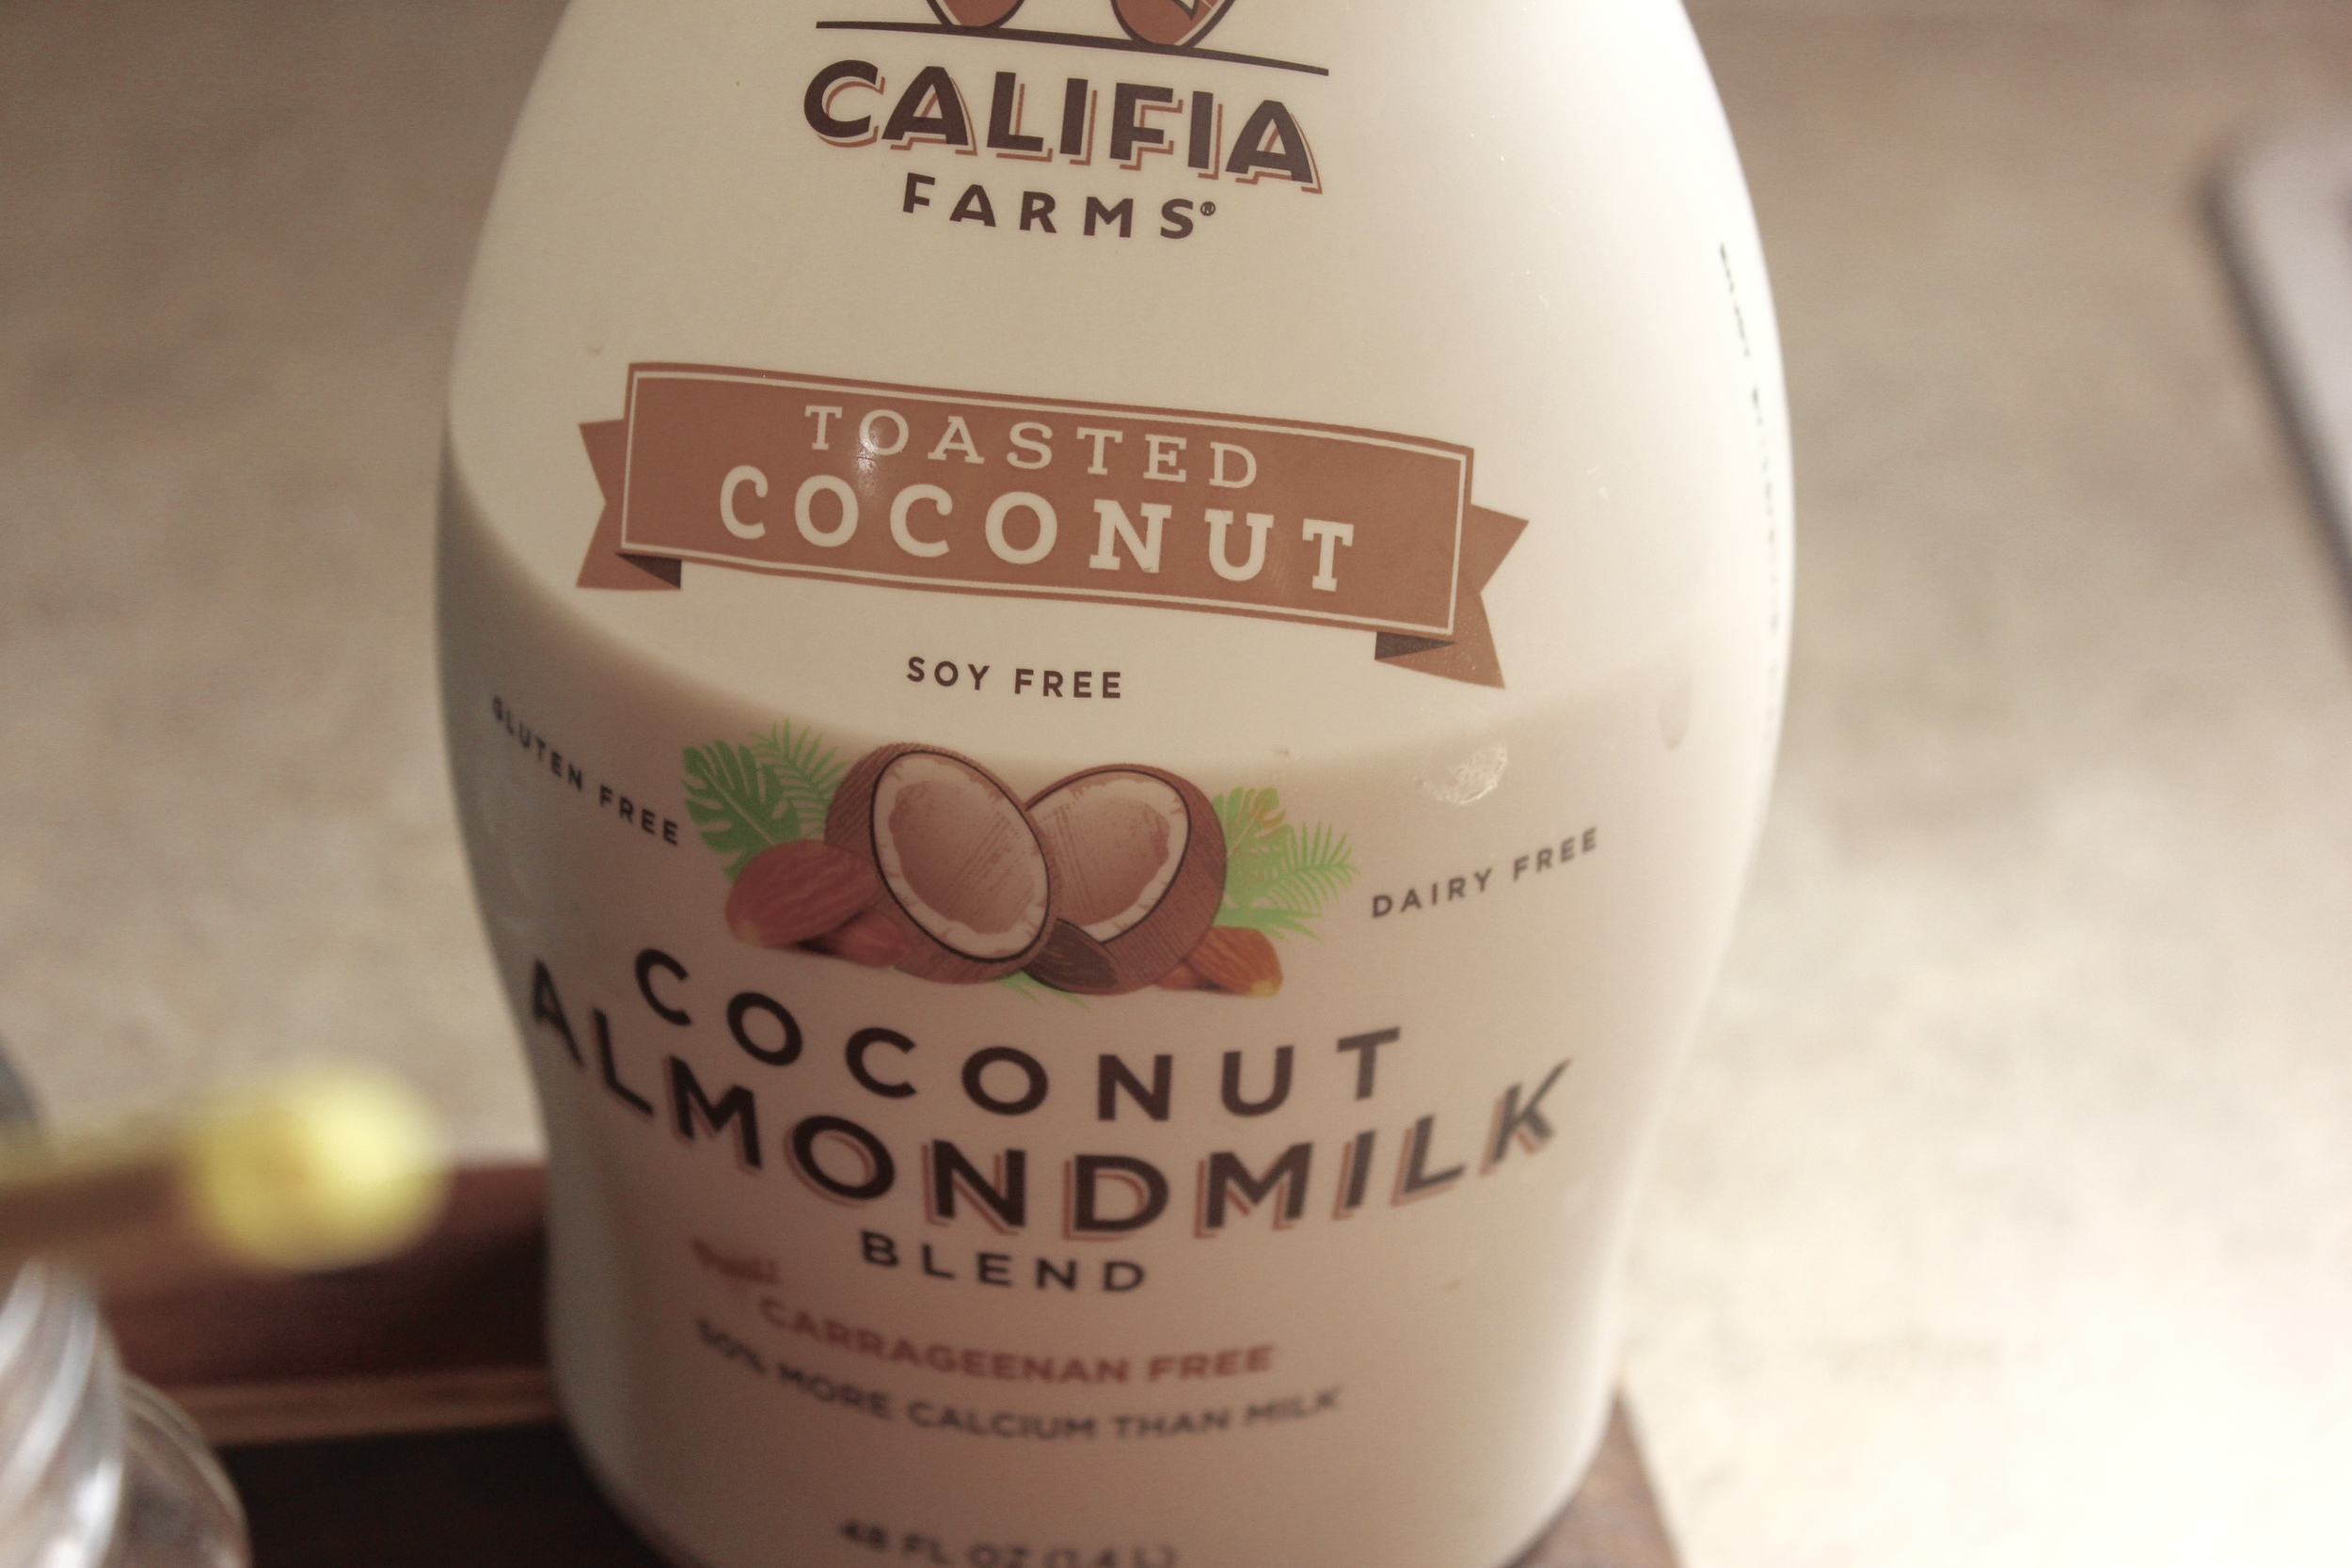 I am loving this lately in my smoothies and for cooking!